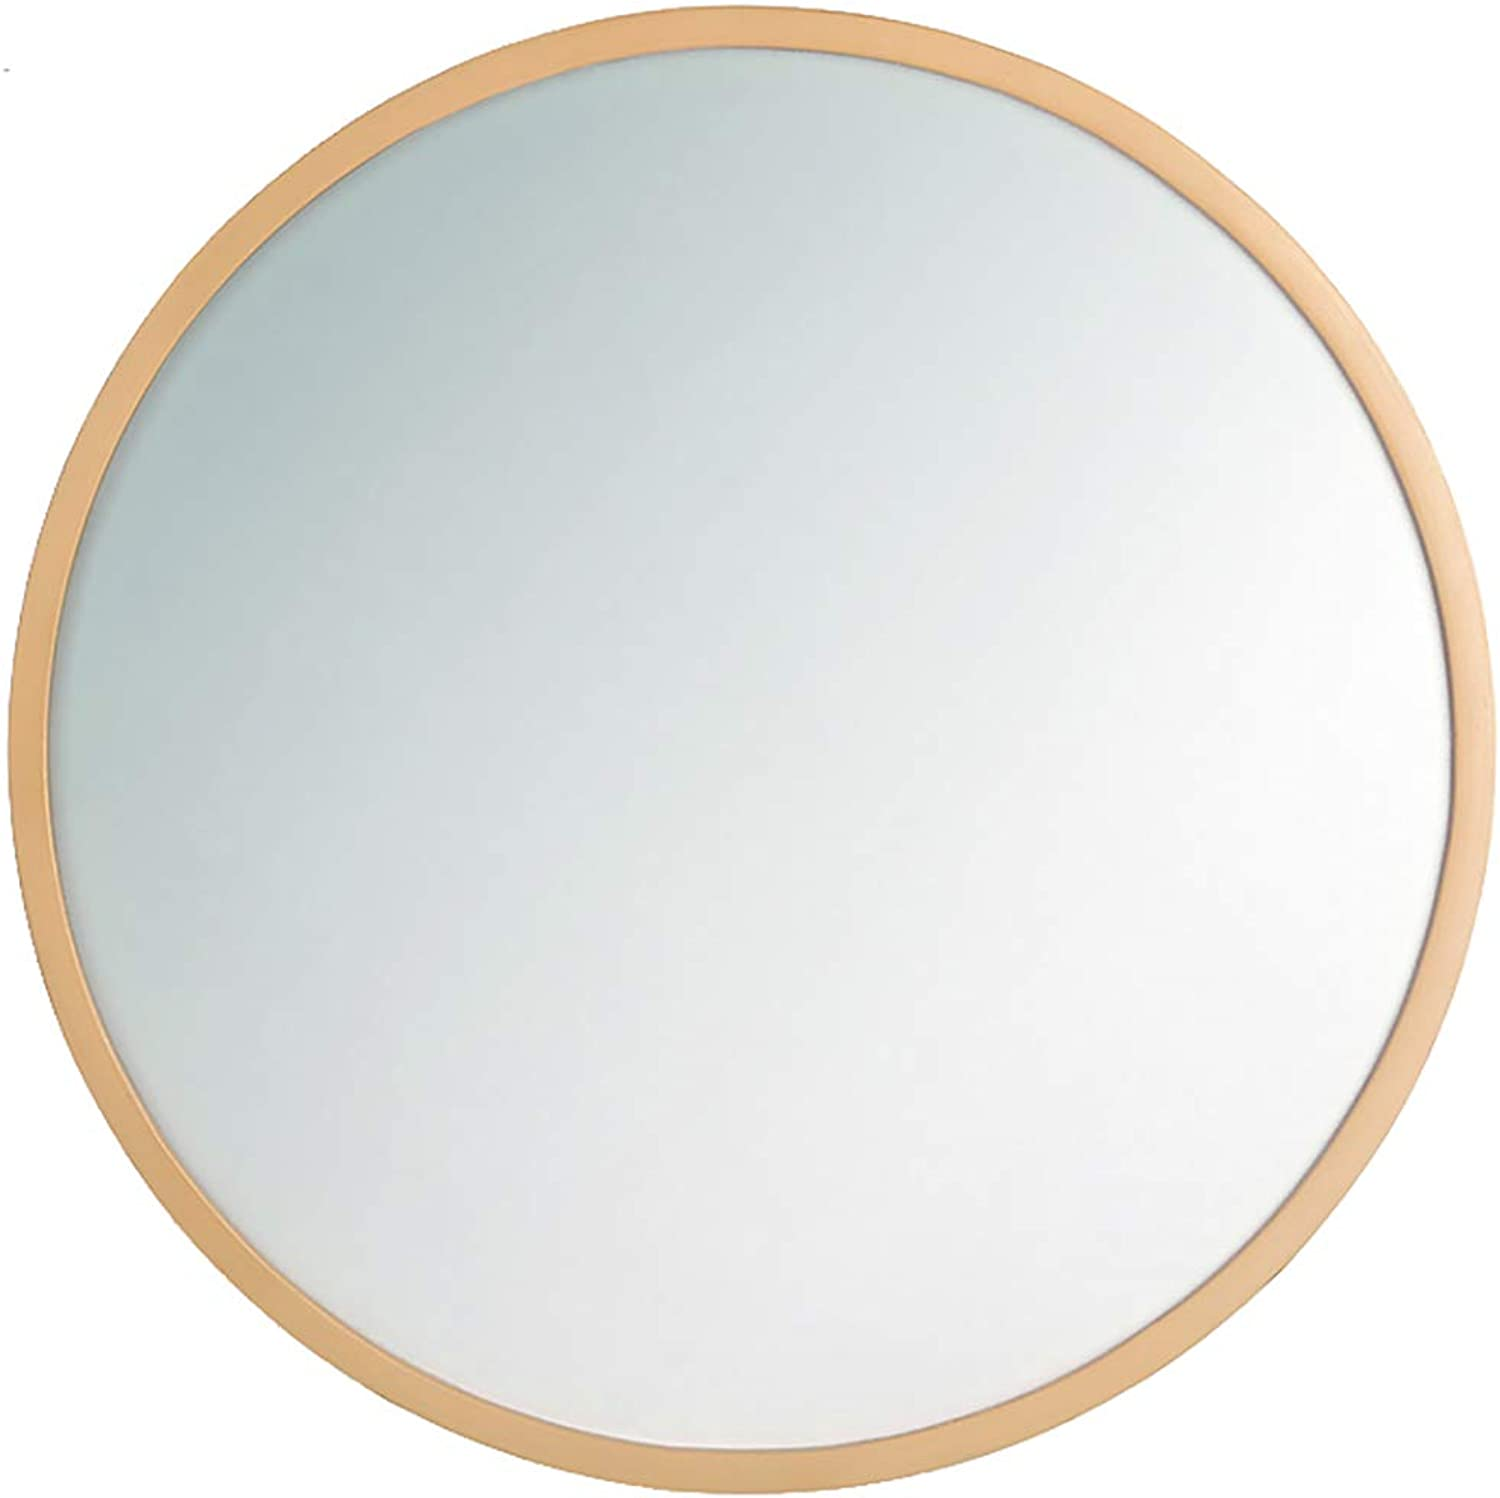 GUOWEI Mirror Wall-Mounted Floating Bathroom Decoration High Definition Wooden Framed Makeup Simple Circular, 6 Sizes (color   Beige, Size   Diameter -30 cm)